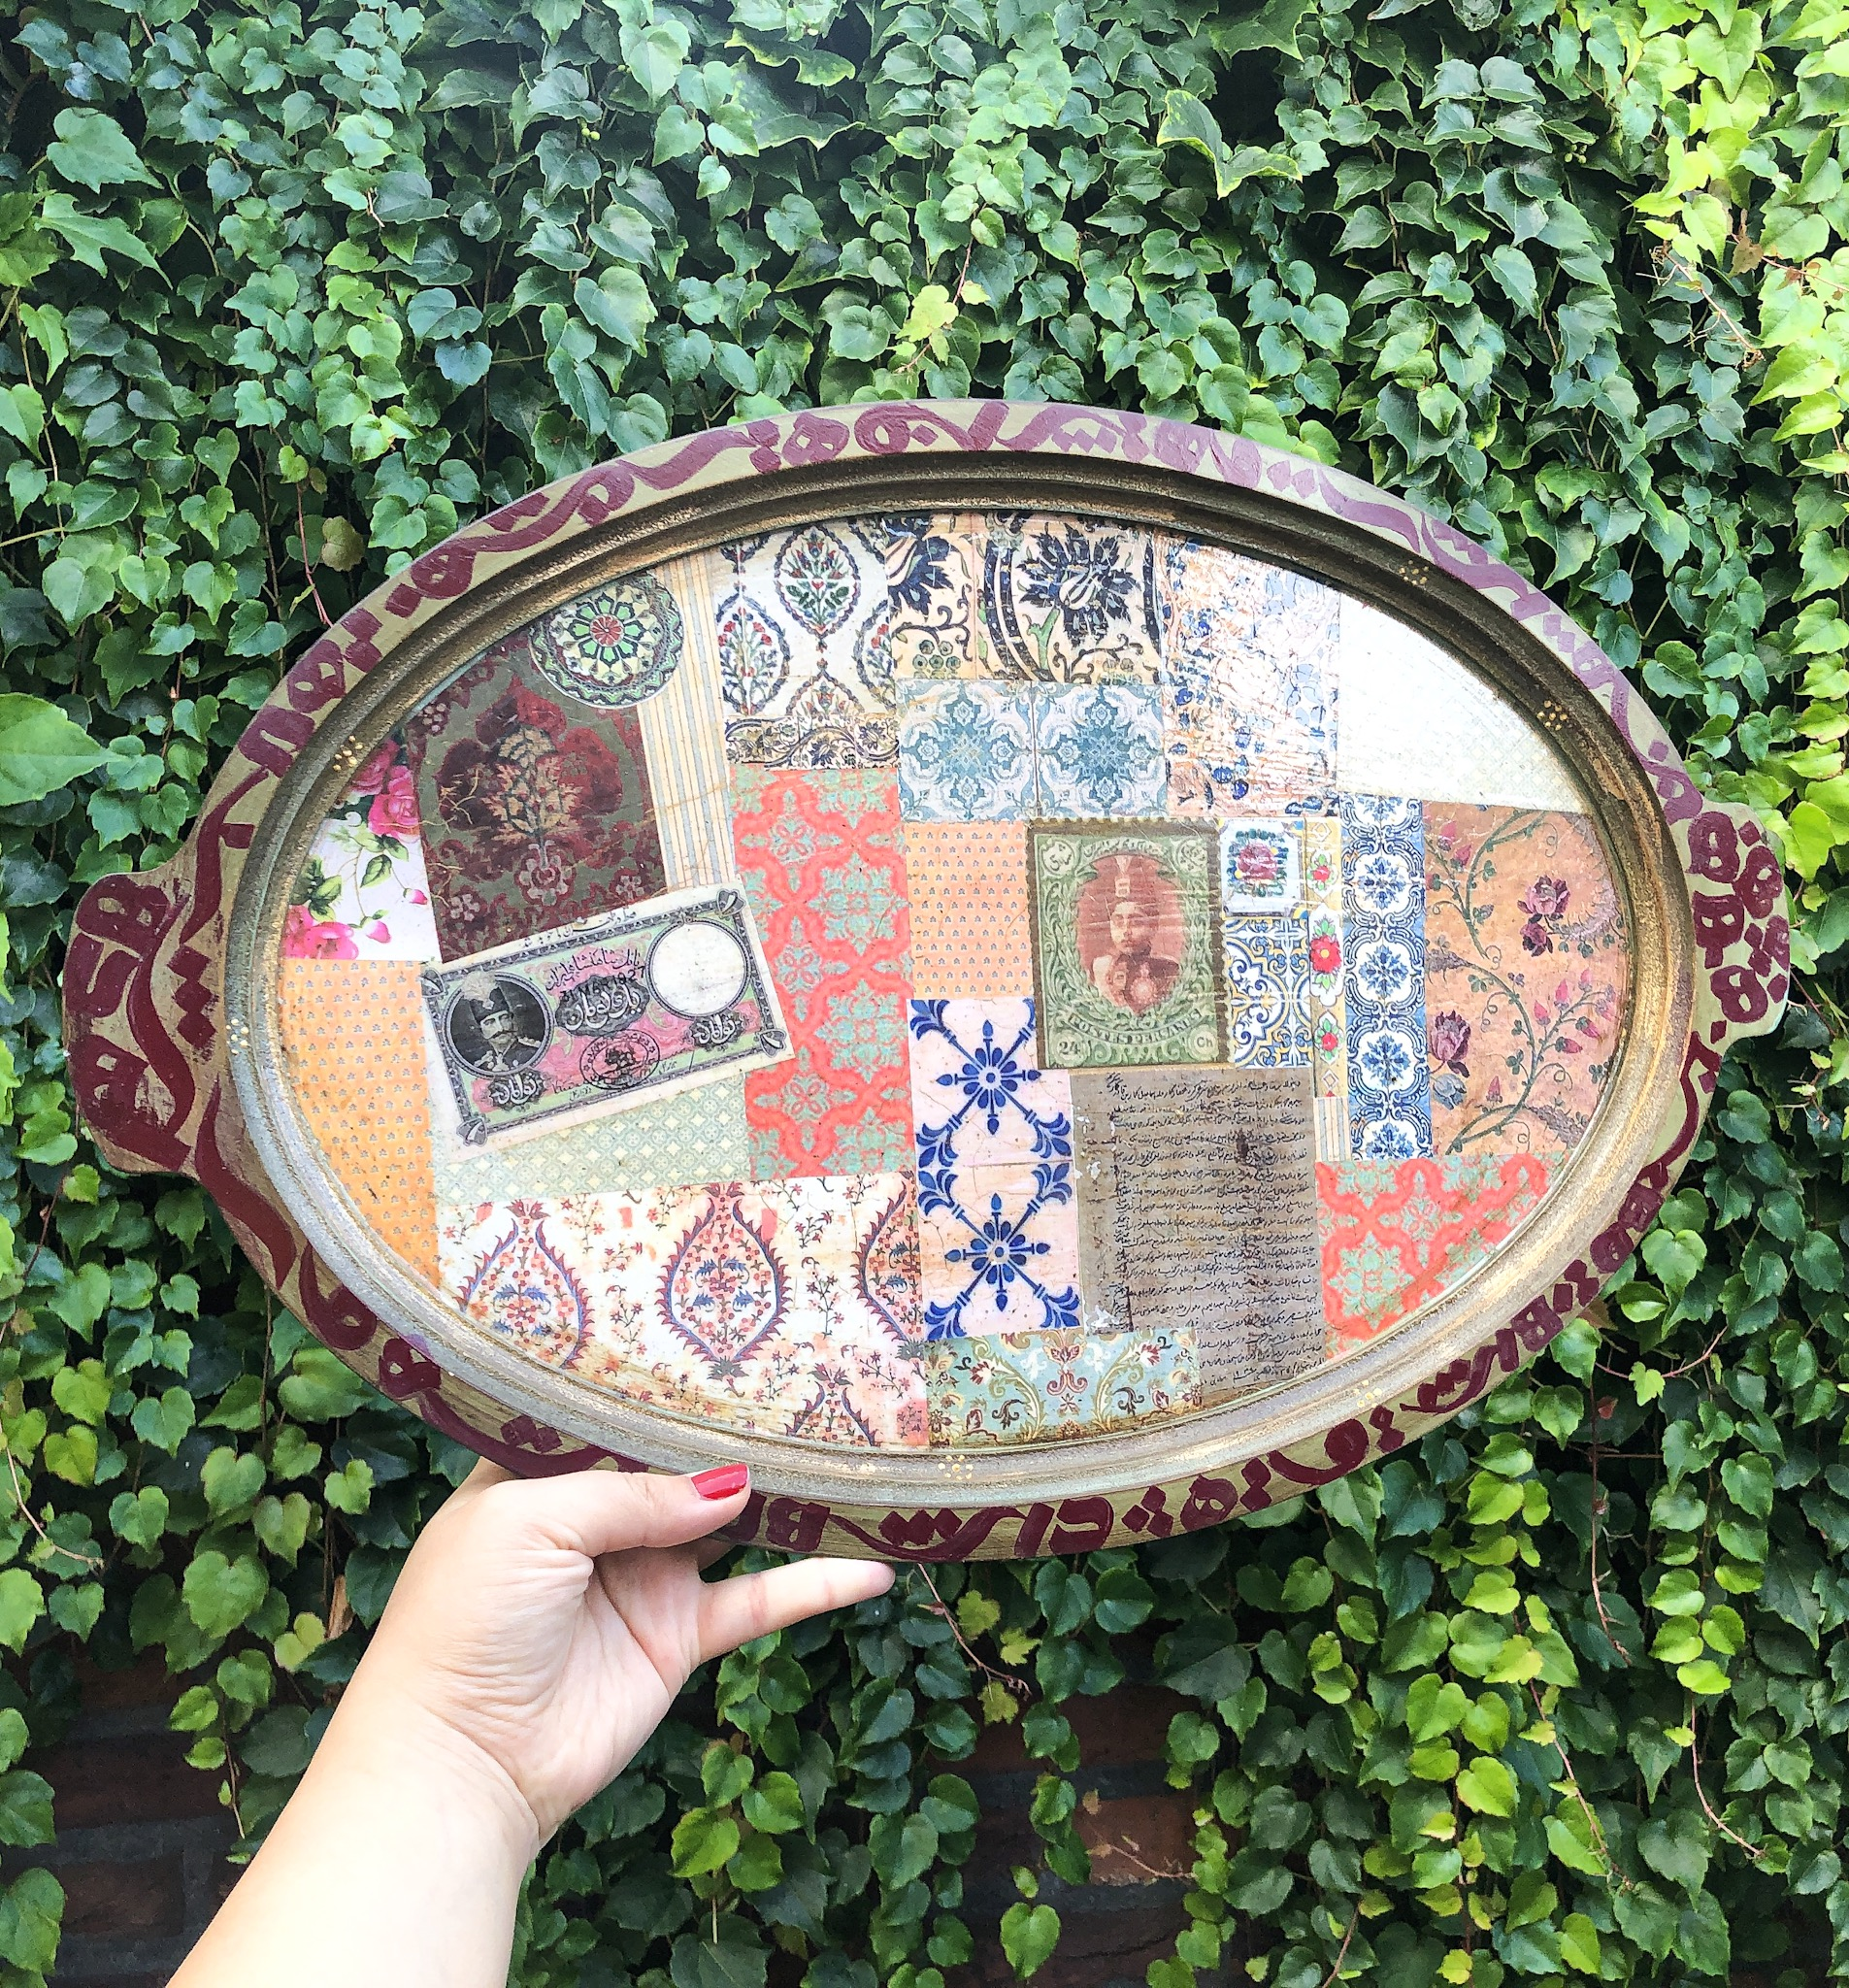 Nabat handmade wooden tray 48cm x 35 cm calligraphy